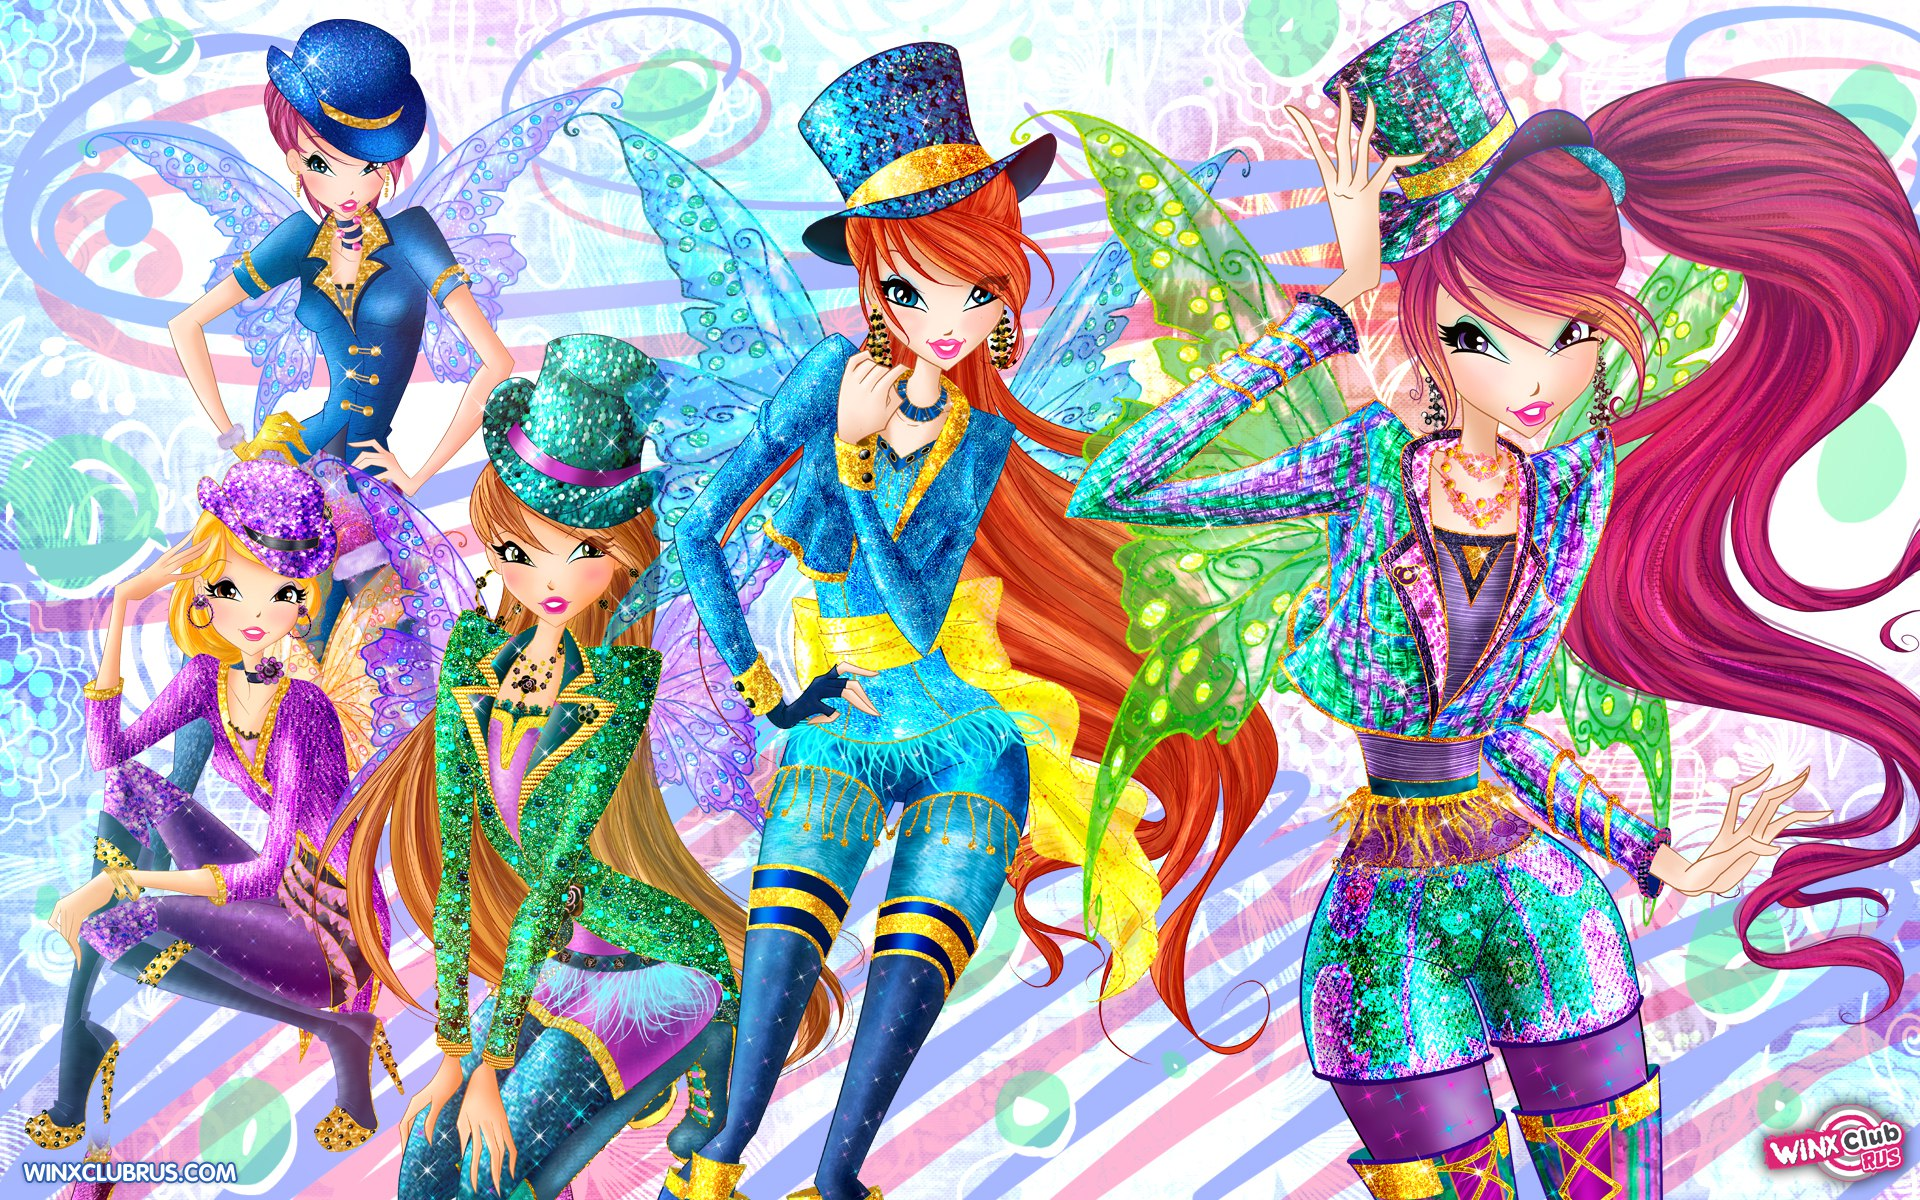 Amazing Wallpaper Halloween Fairy - 1516192344_youloveit_com_winx_club_couture_wallpapers_big_and_bright43  Photograph_651882.jpg